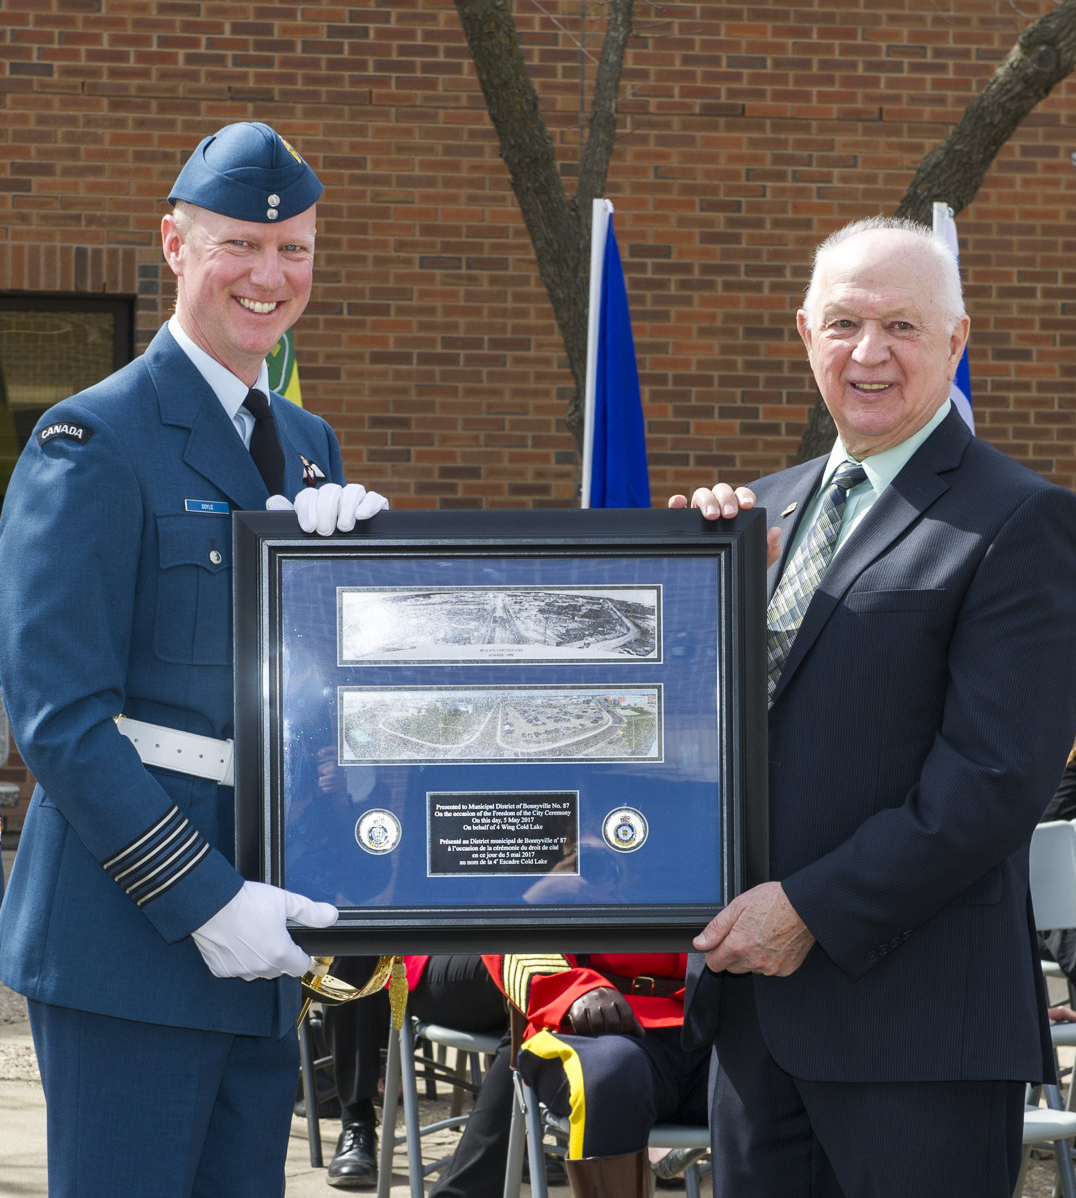 4 Wing Cold Lake commanding officer  Colonel Paul Doyle (left) presents Bonnyville, Alberta, town councillor Ray Prevost (right) with a gift on May 5, 2017, during the Freedom of the City for the Town of Bonnyville. 4 Wing Cold Lake was granted Freedom of the City for the Town of Bonnyville and Municipal District of Bonnyville, Bonnyville, Alberta. PHOTO: Corporal Justin Roy, CK07-2017-0343-007